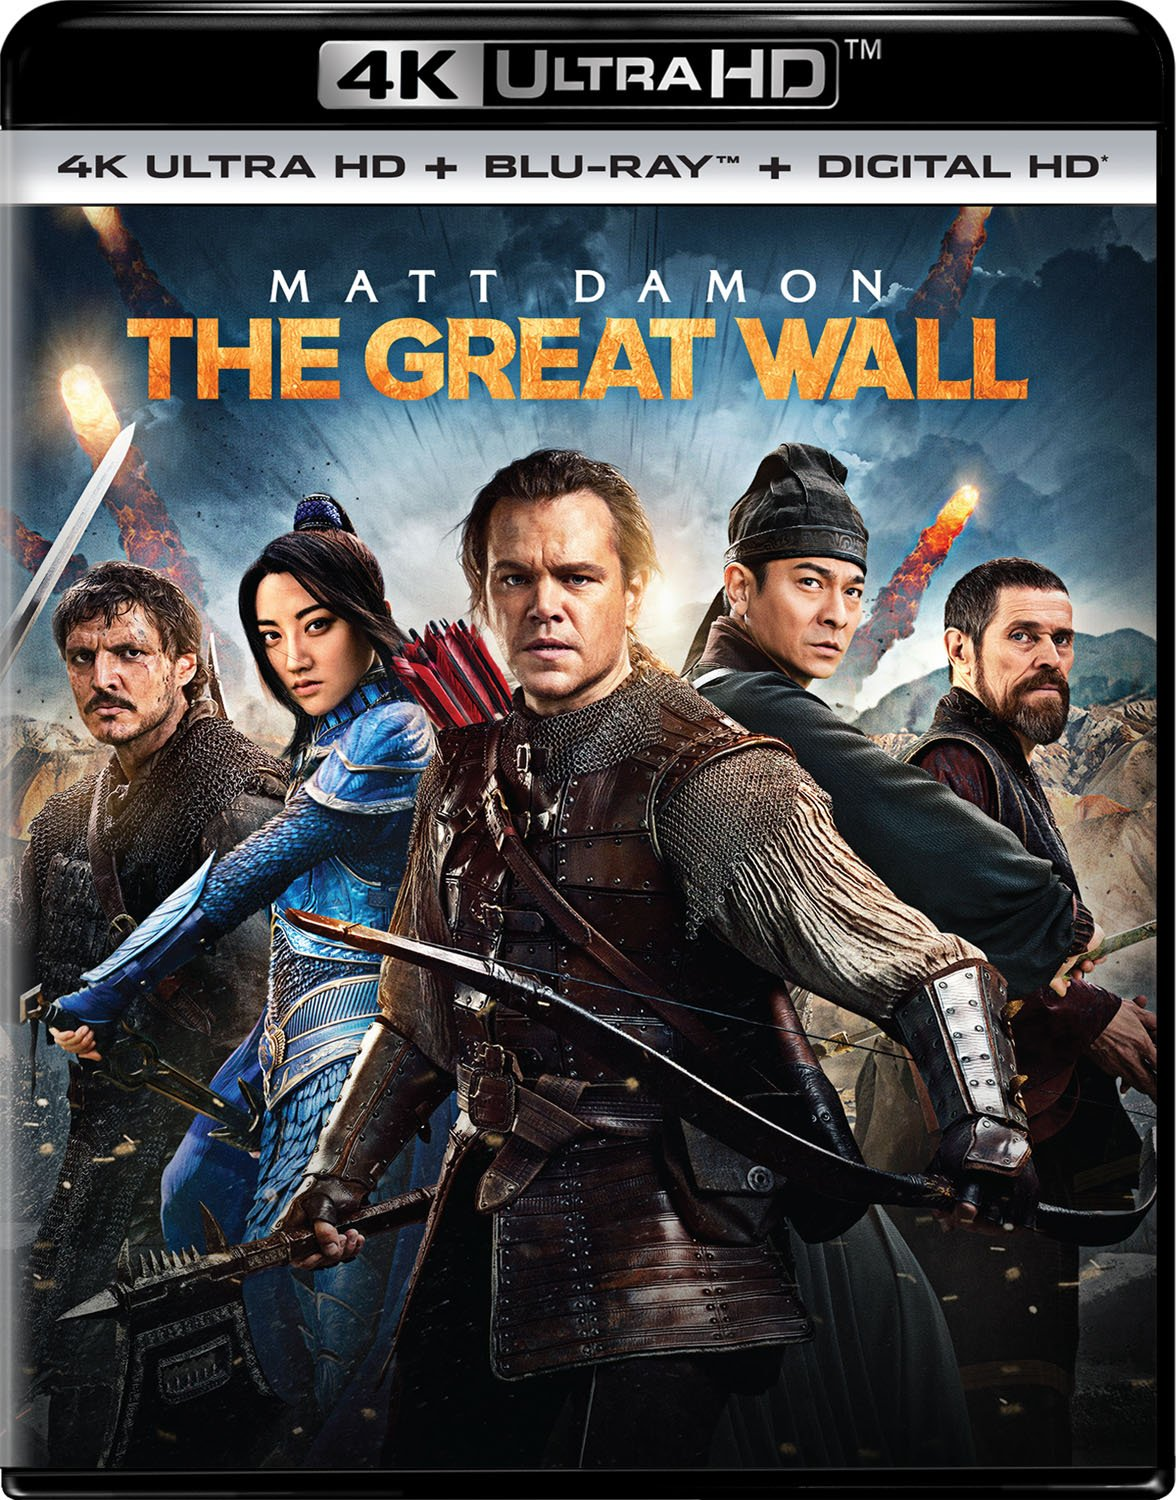 The Great Wall (2016) 720p + 1080p BluRay x264 ESubs AC3 Dual Audio [Hindi DD5.1 + English DD5.1]